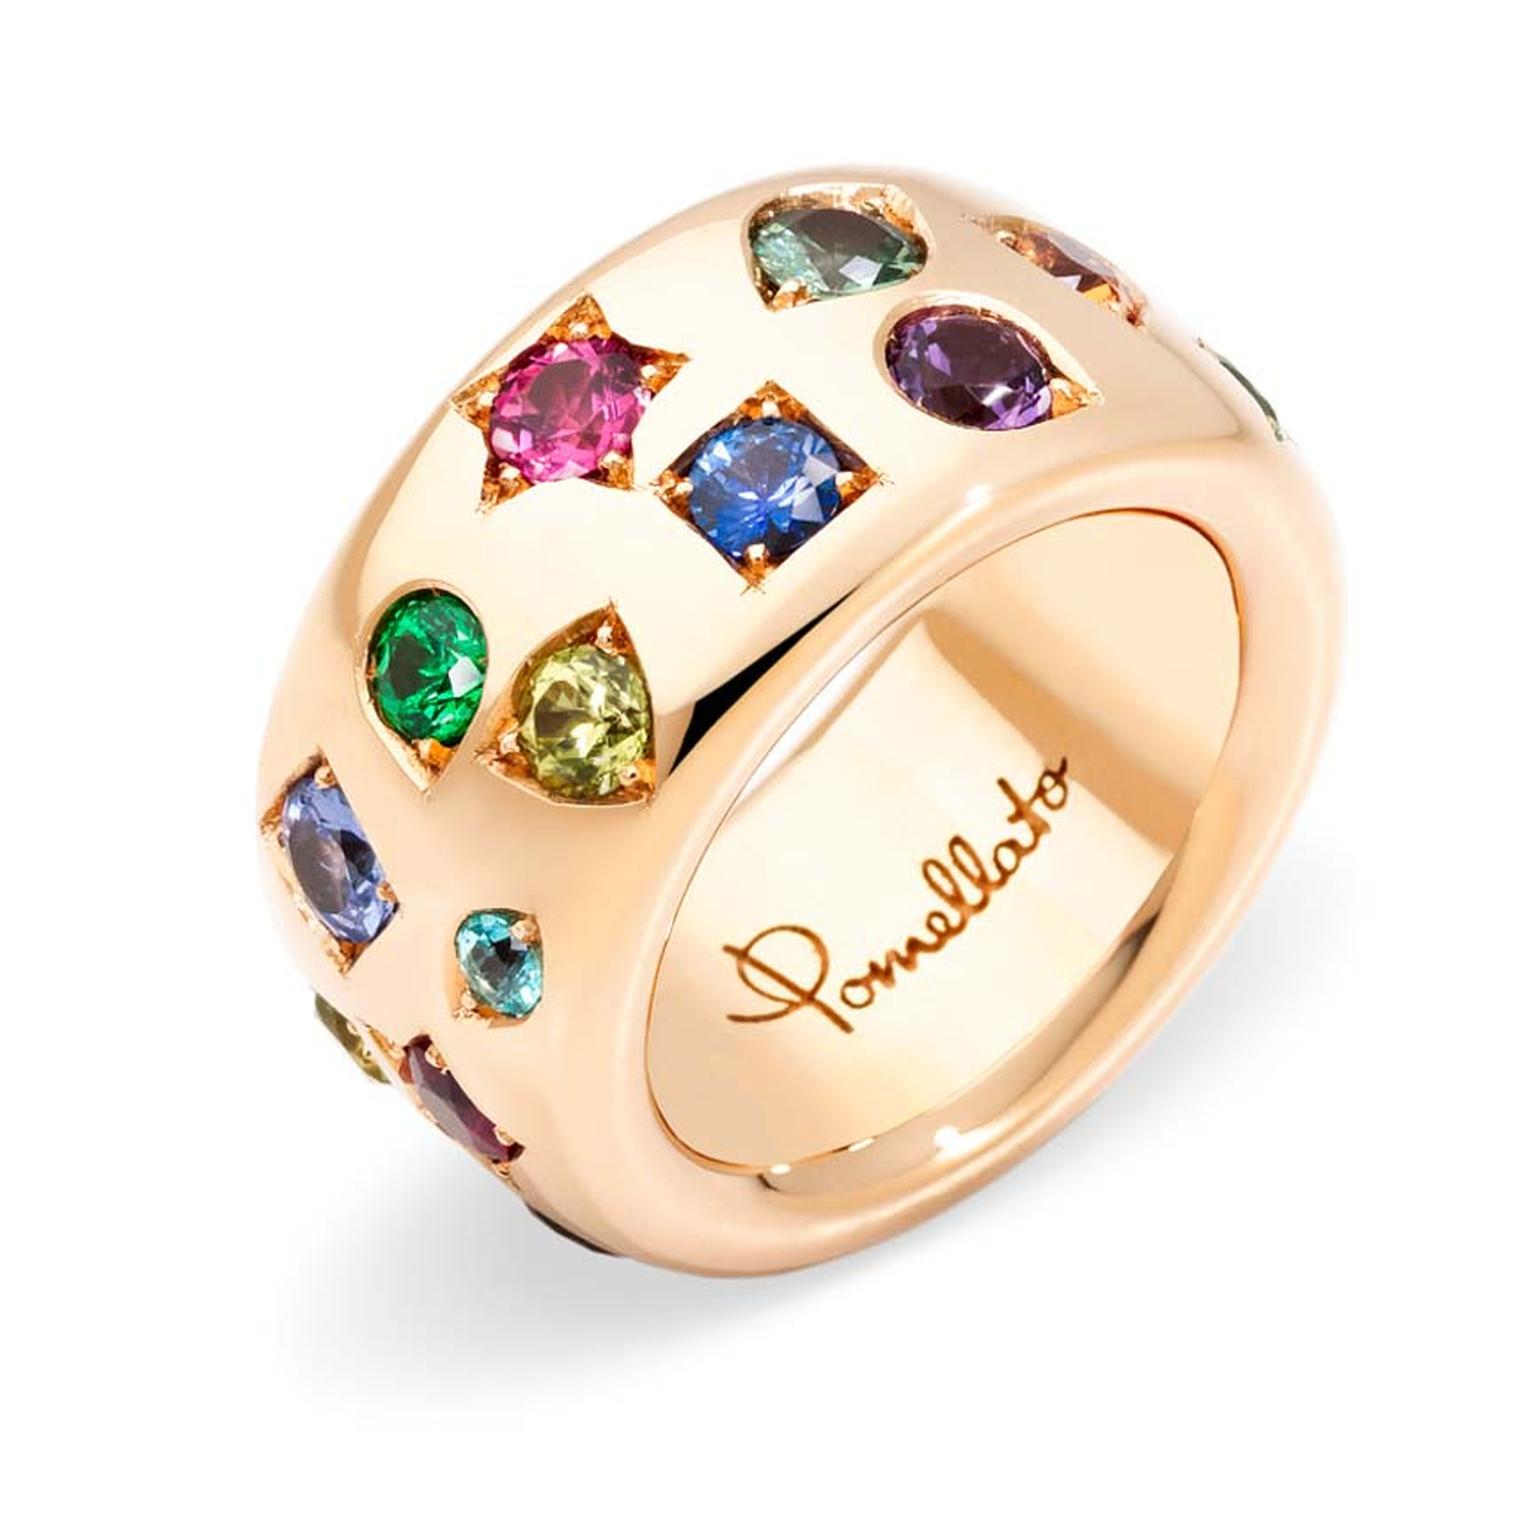 Pomellato Iconica ring